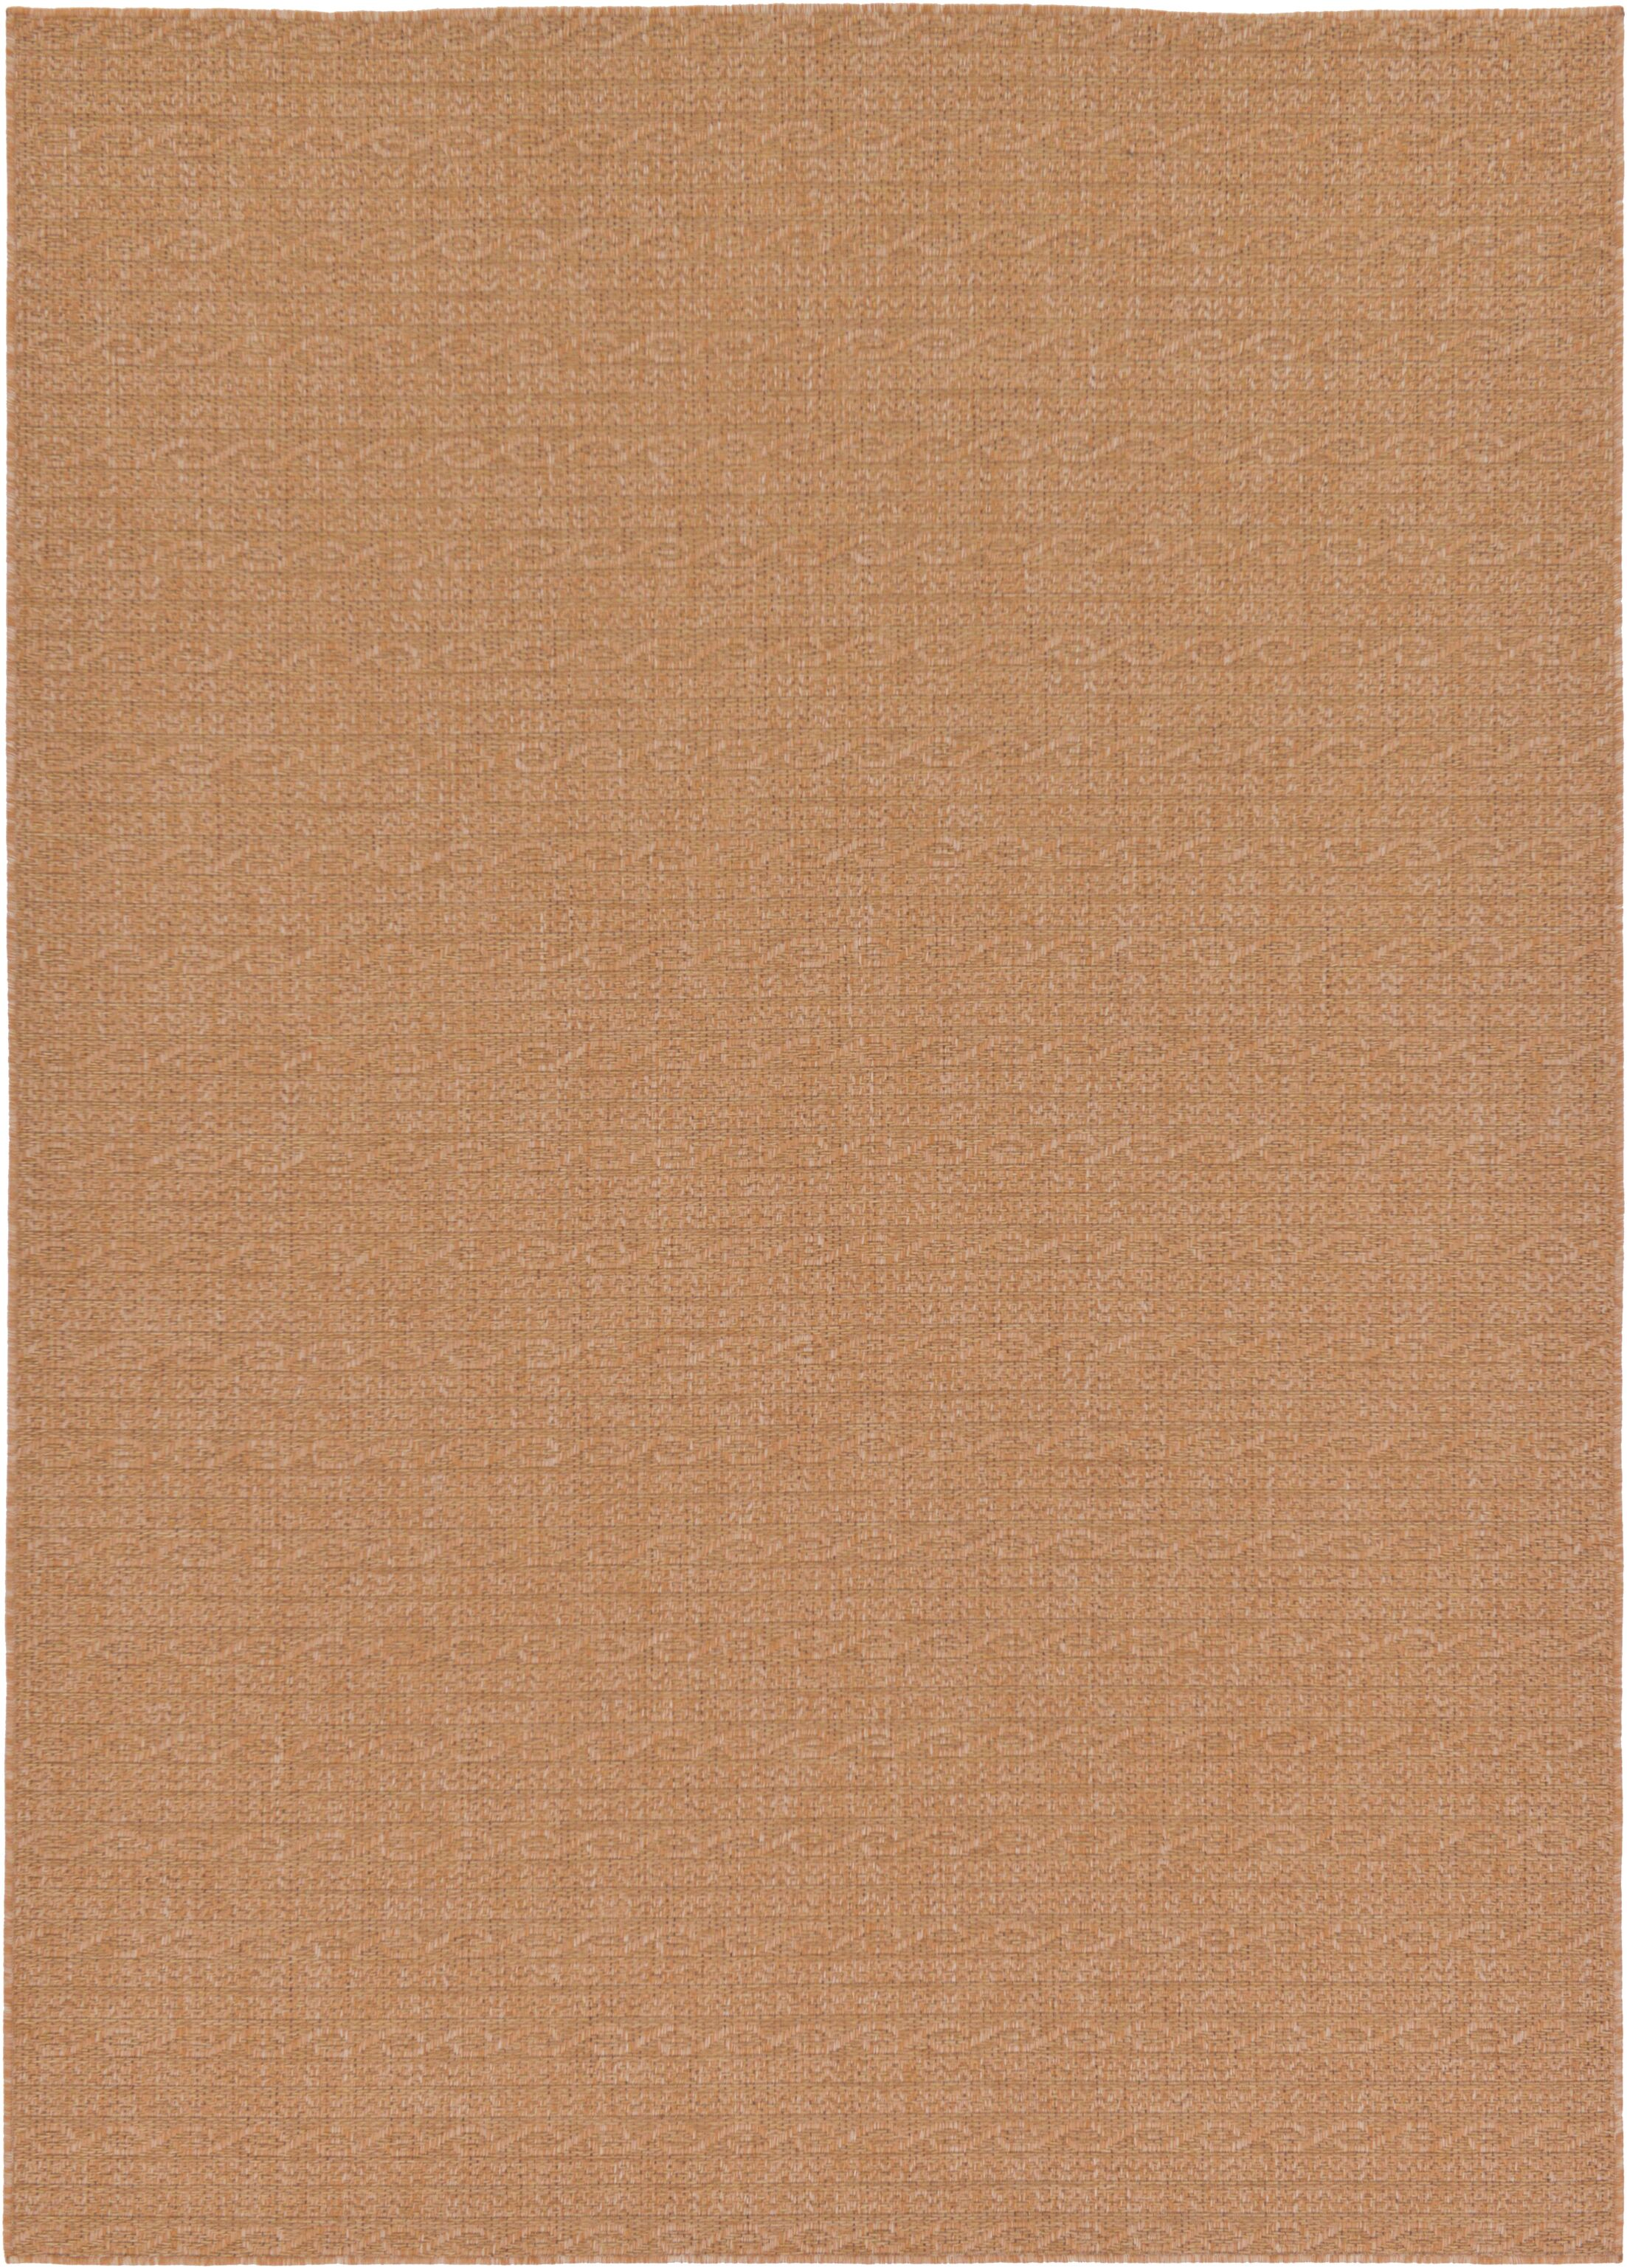 Dresden Light Brown Outdoor Area Rug Rug Size: Rectangle 7' x 10'